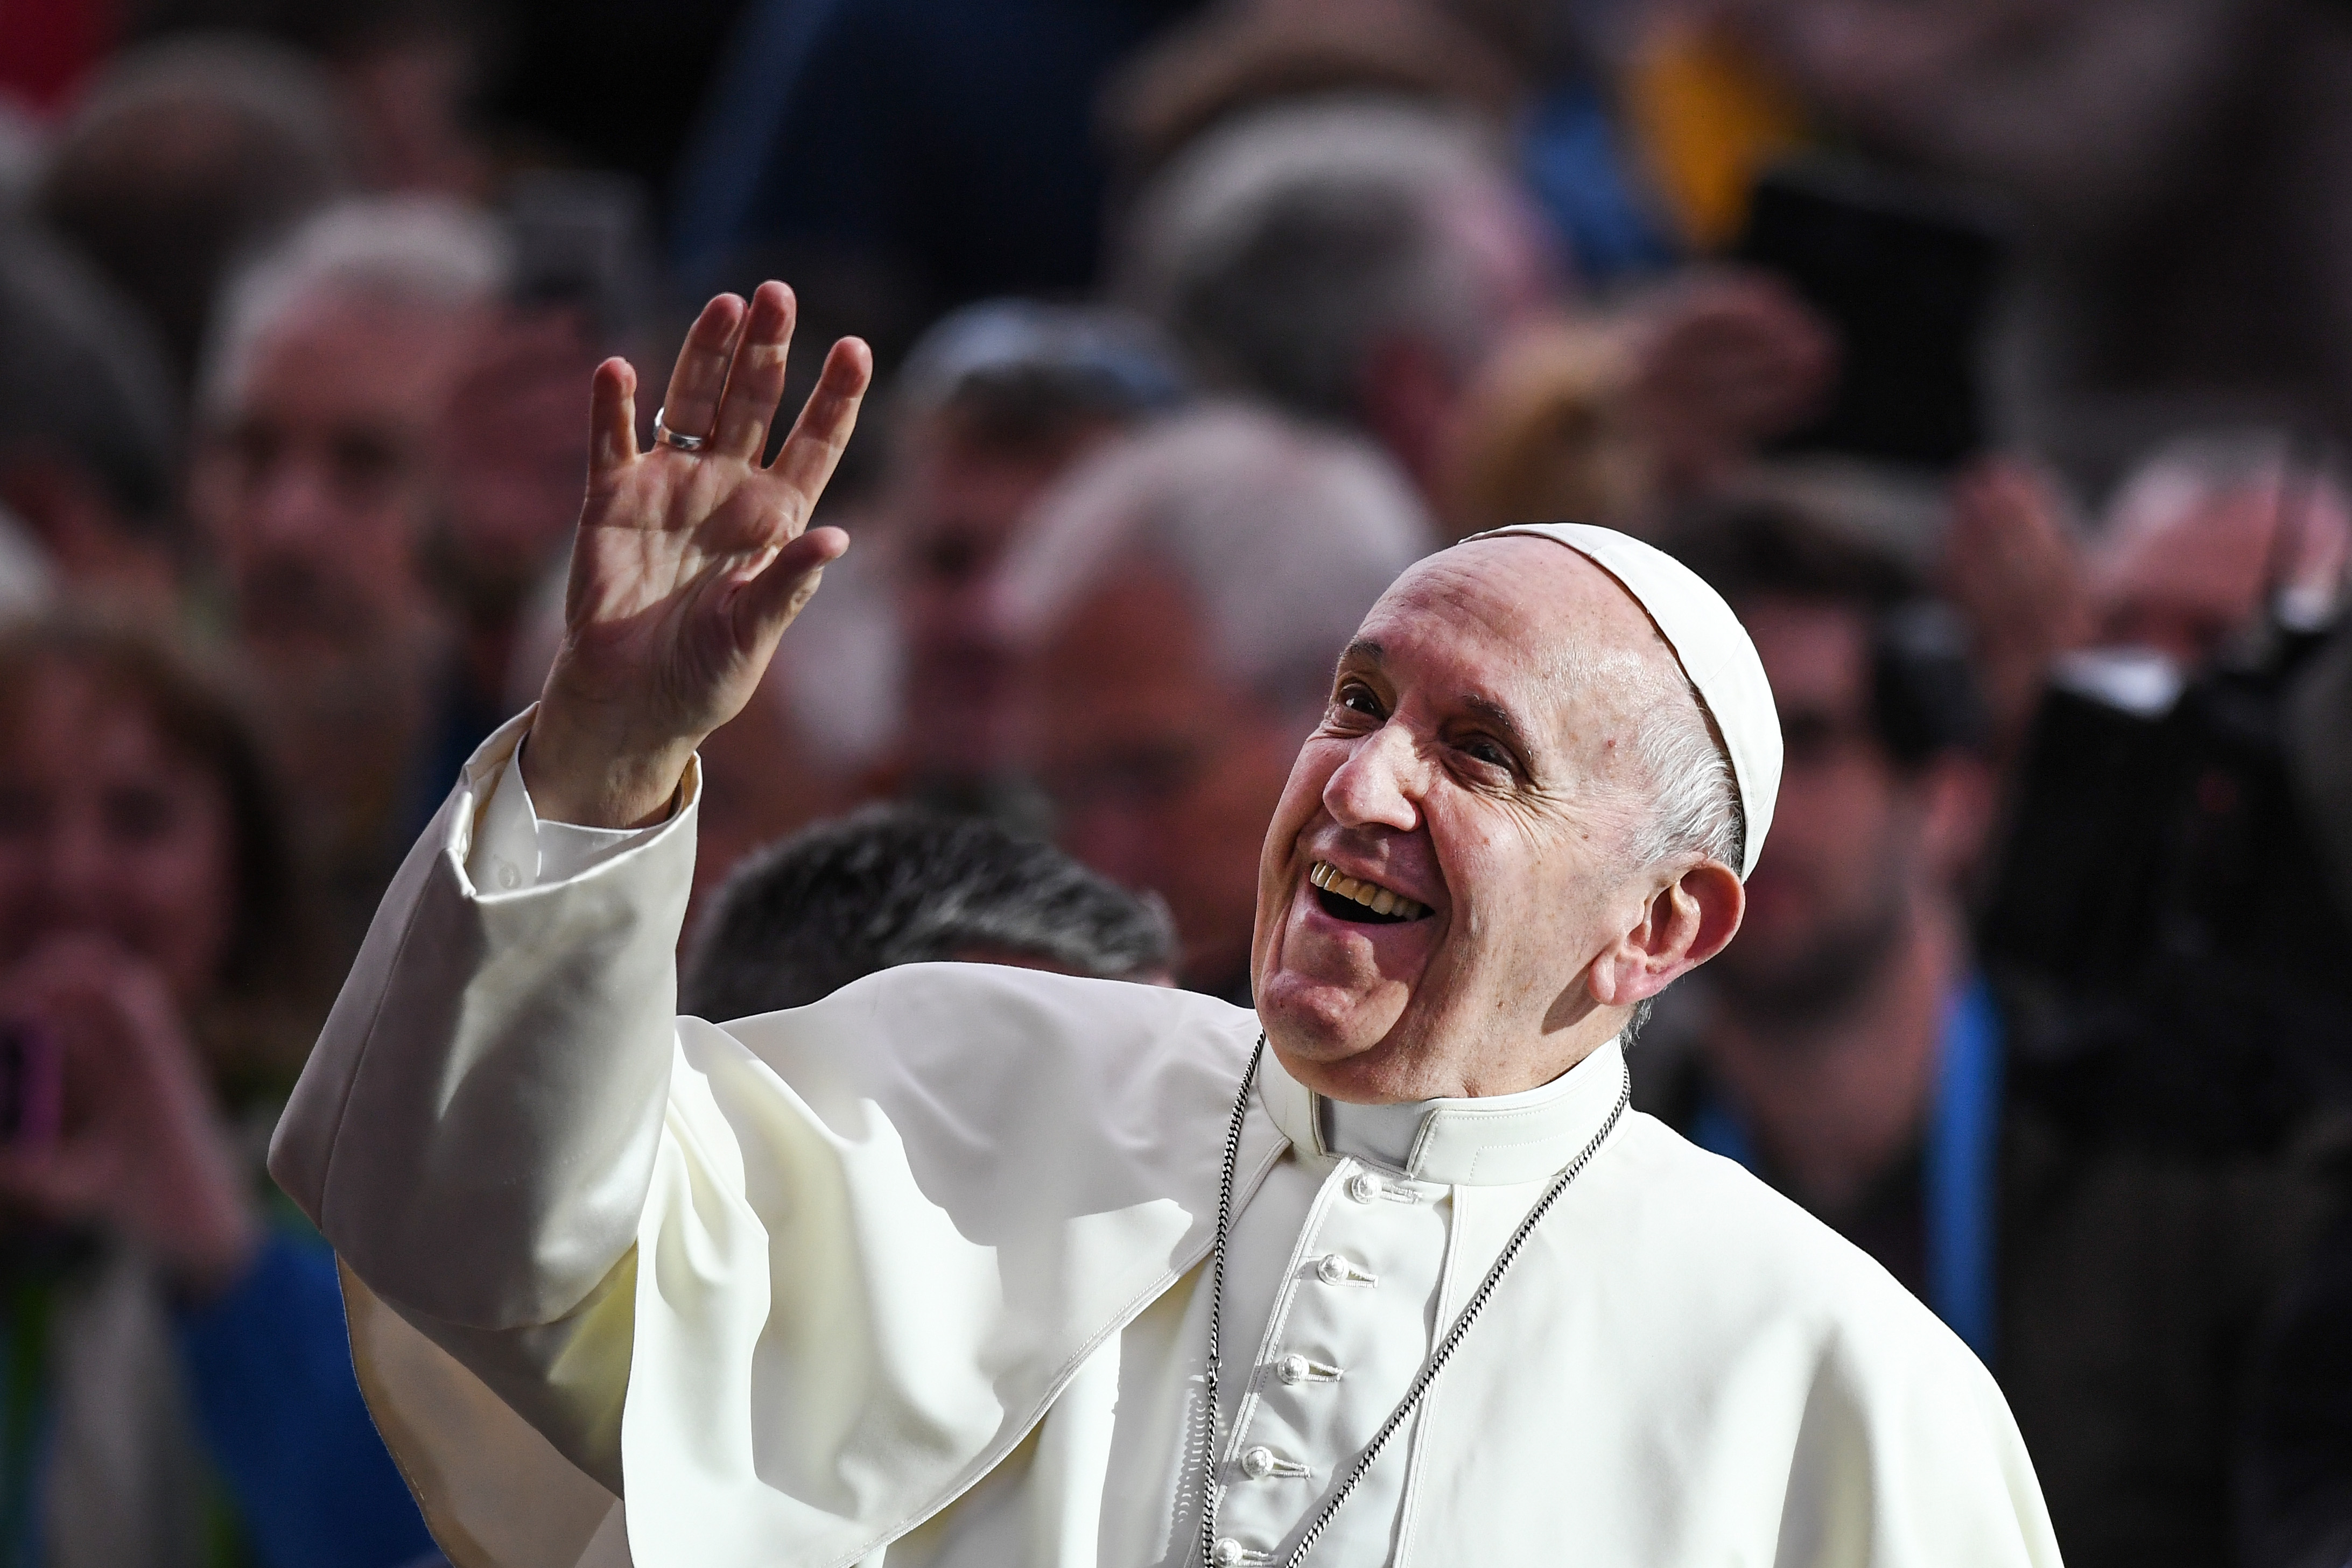 Pope Francis attends the festival of families at Croke Park on August 25, 2018, in Dublin, Ireland. Pope Francis is the 266th Catholic Pope and current sovereign of the Vatican. (Getty Images)